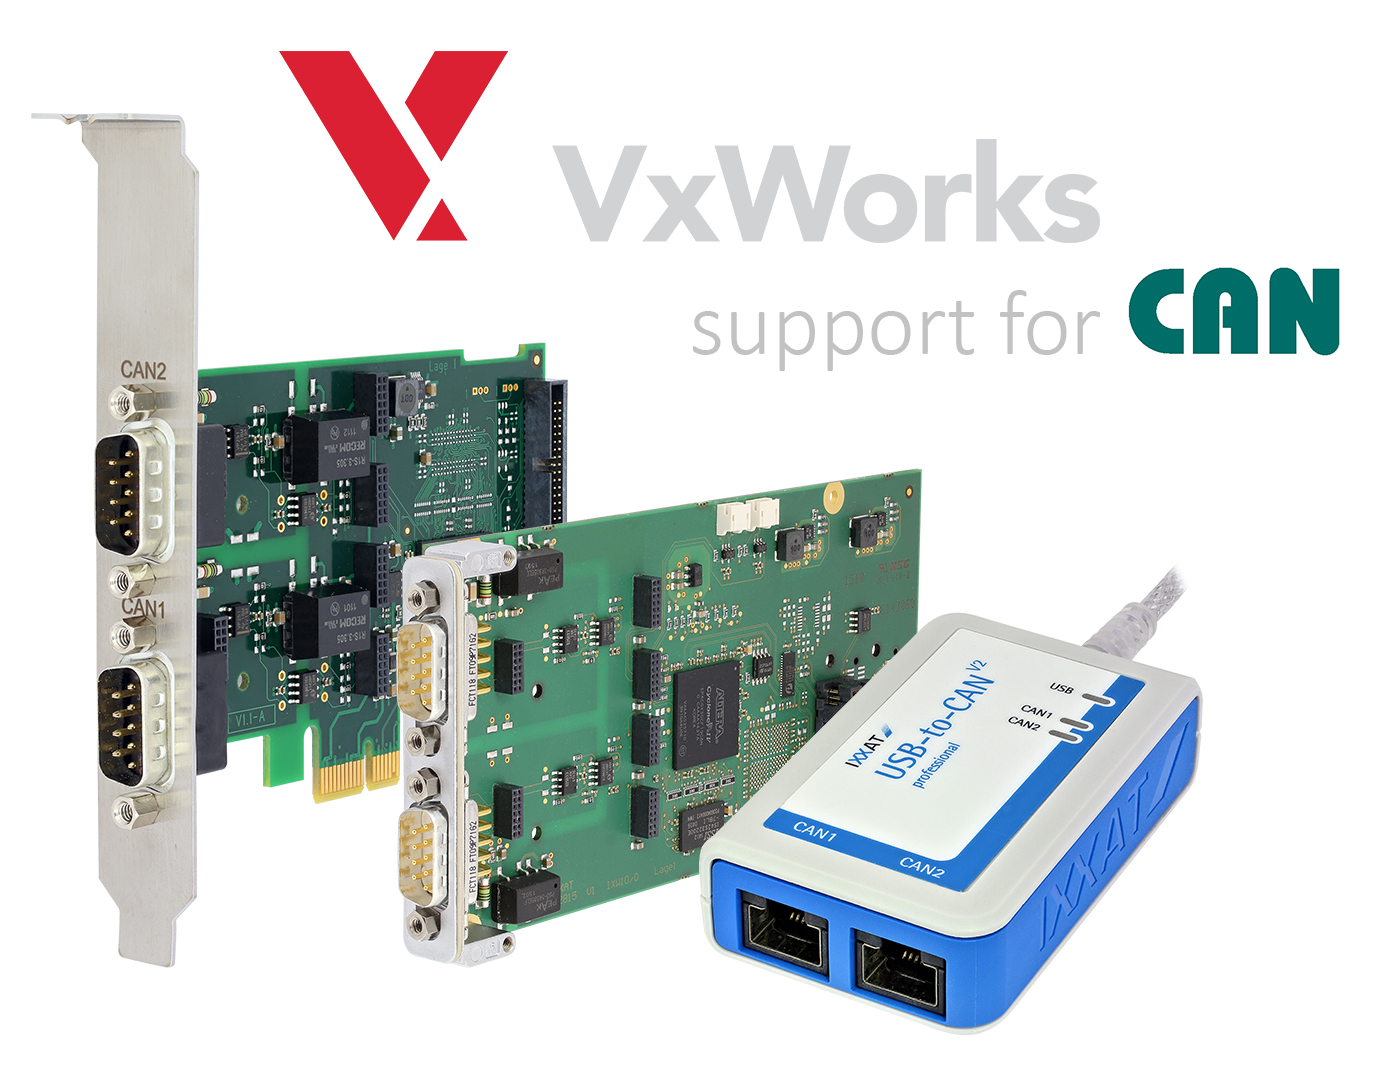 160718-IXXAT-CAN-Interf-for-VxWorks